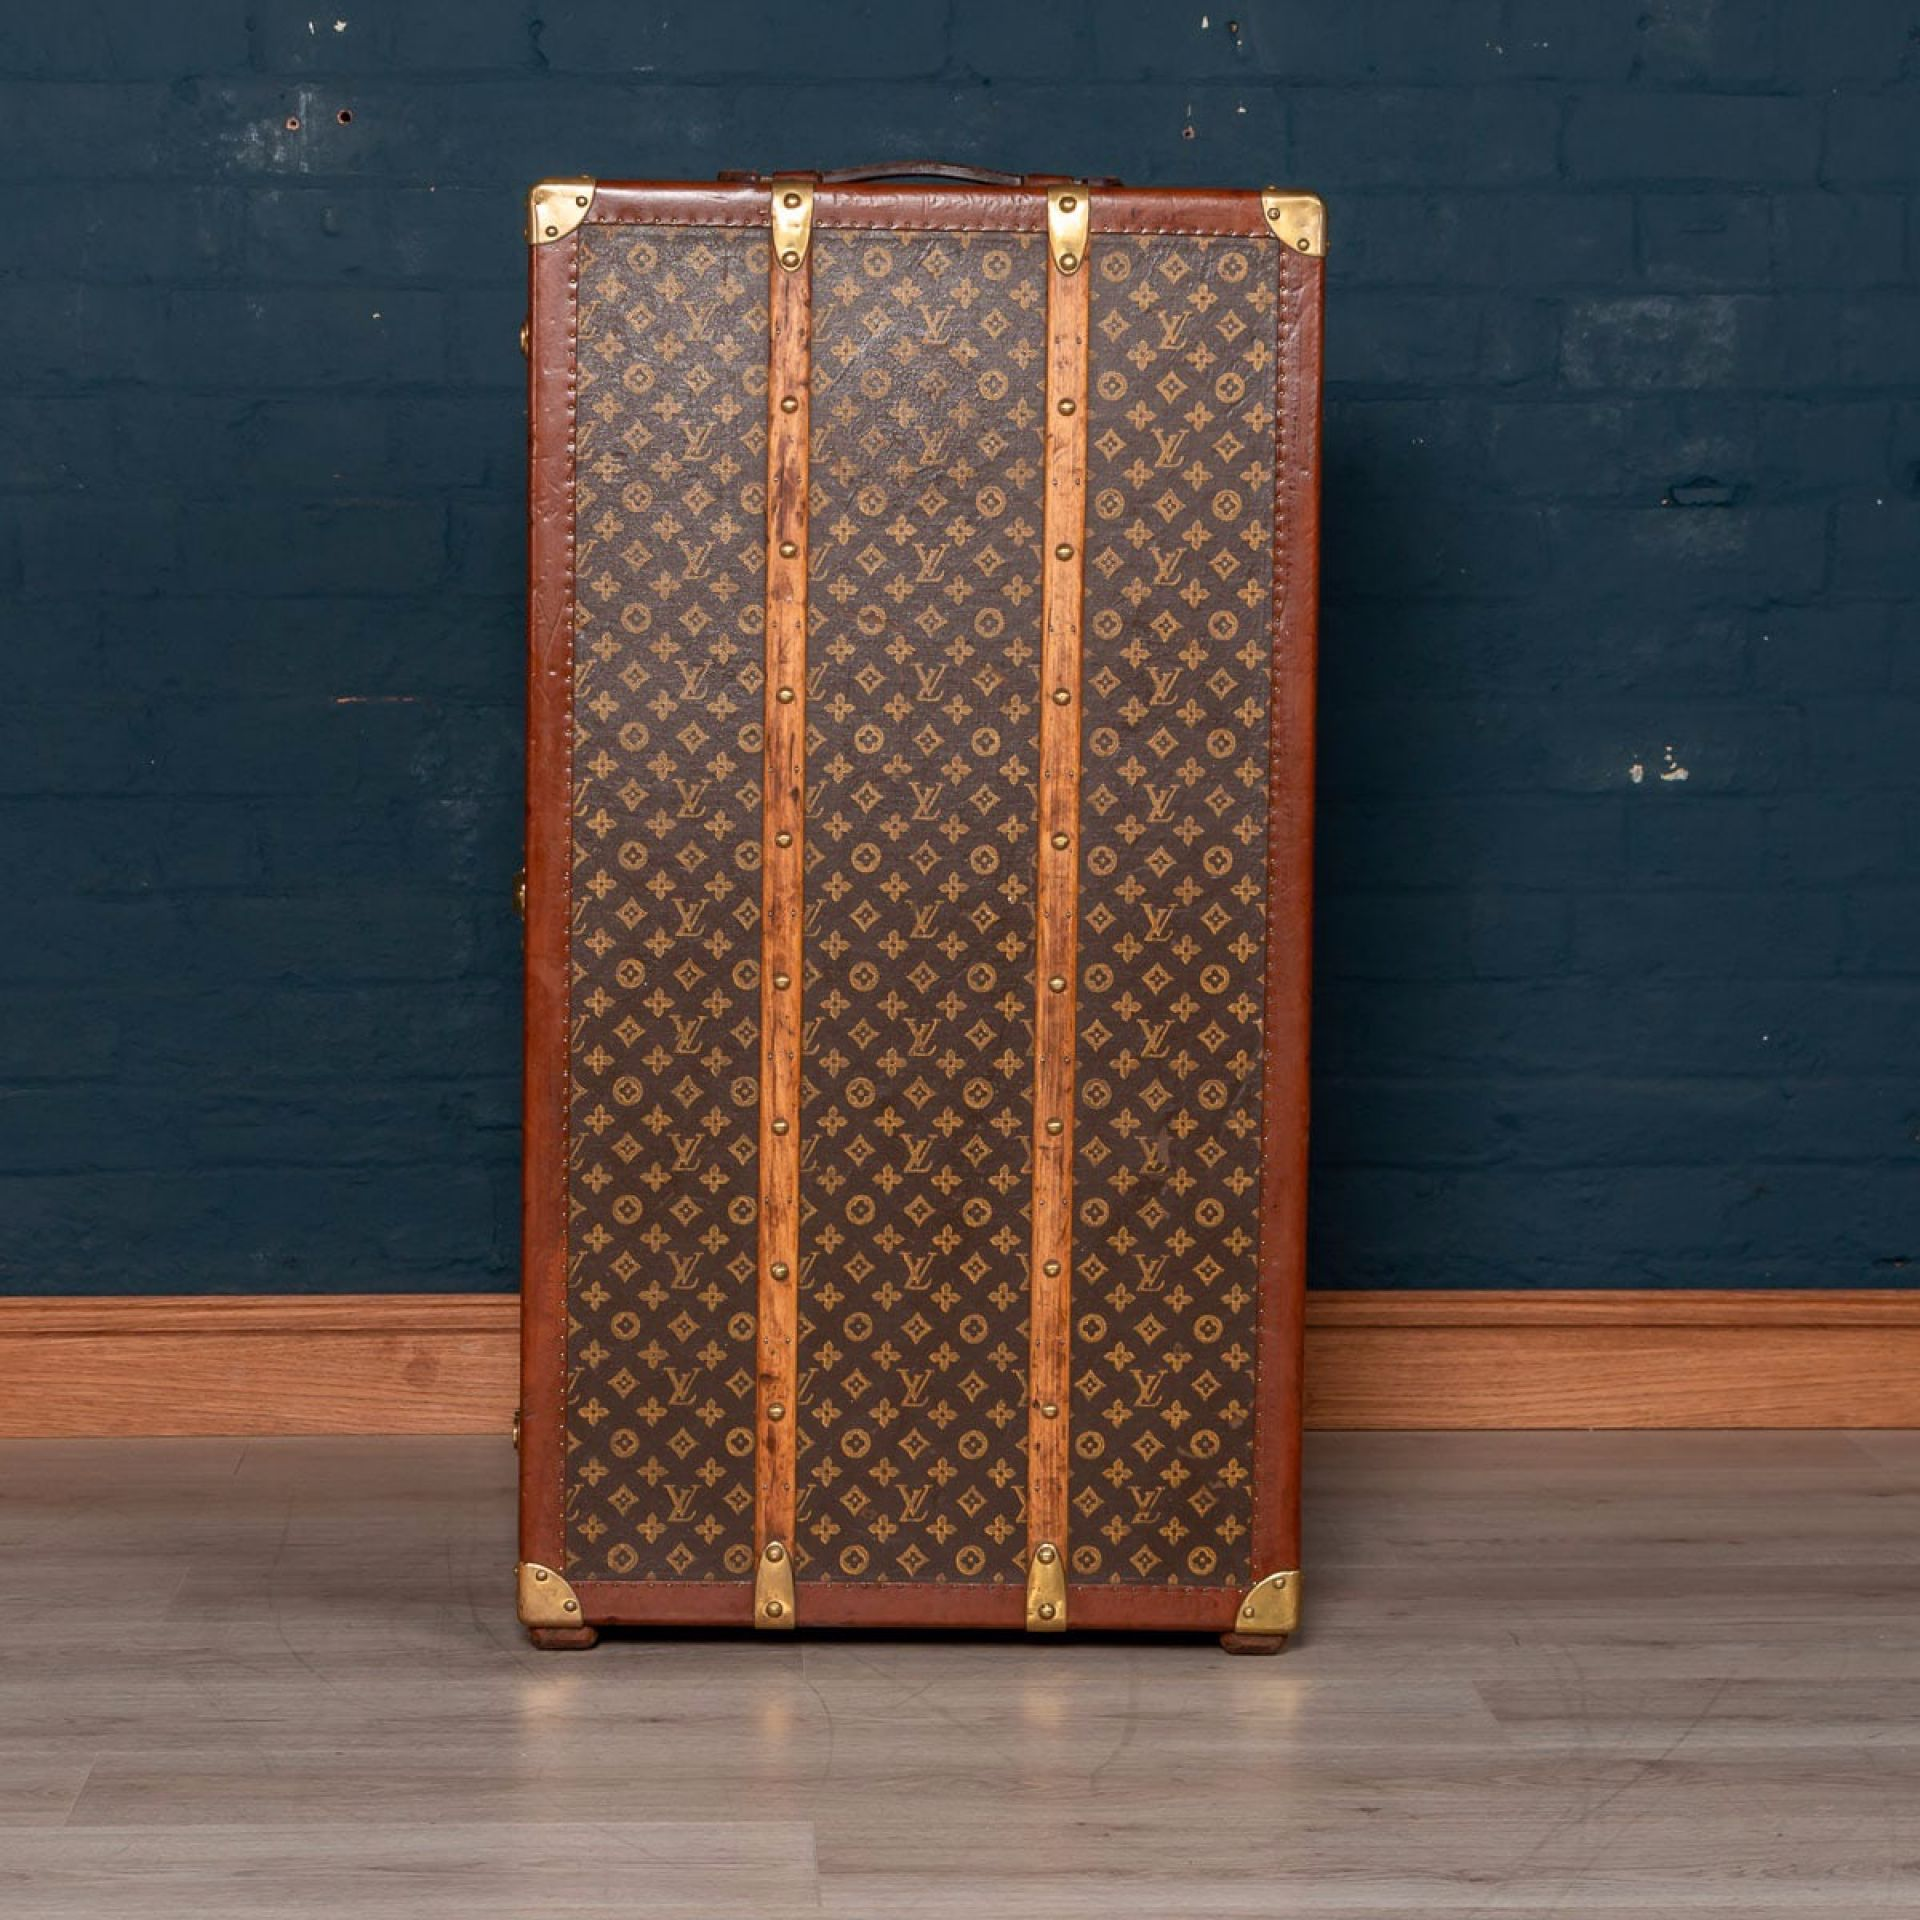 EARLY 20thC LOUIS VUITTON TRUNK WITH CUSTOMISED INTERIOR FOR 60 WATCHES